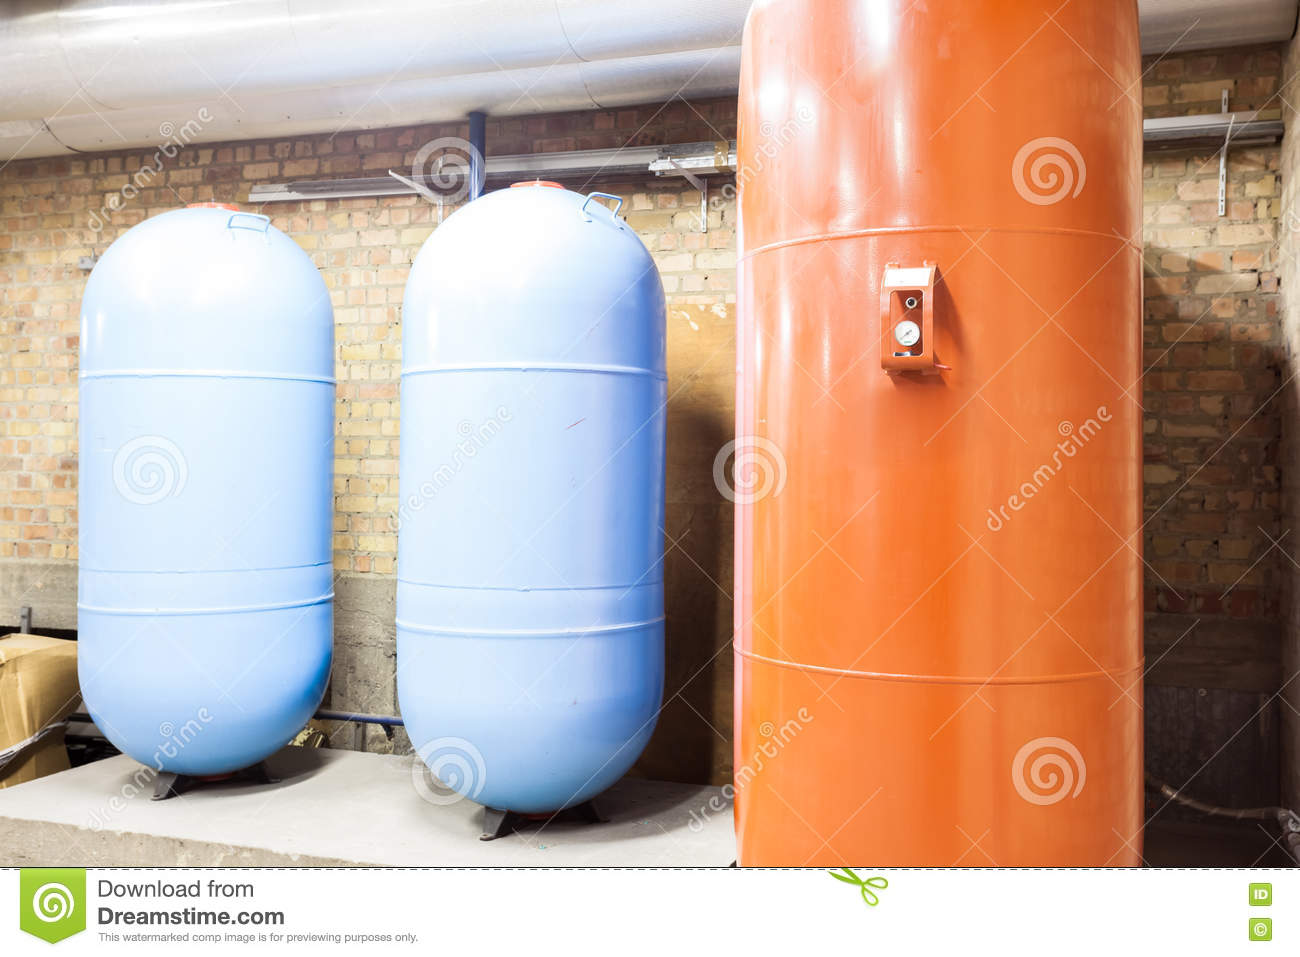 Three expansion boilers